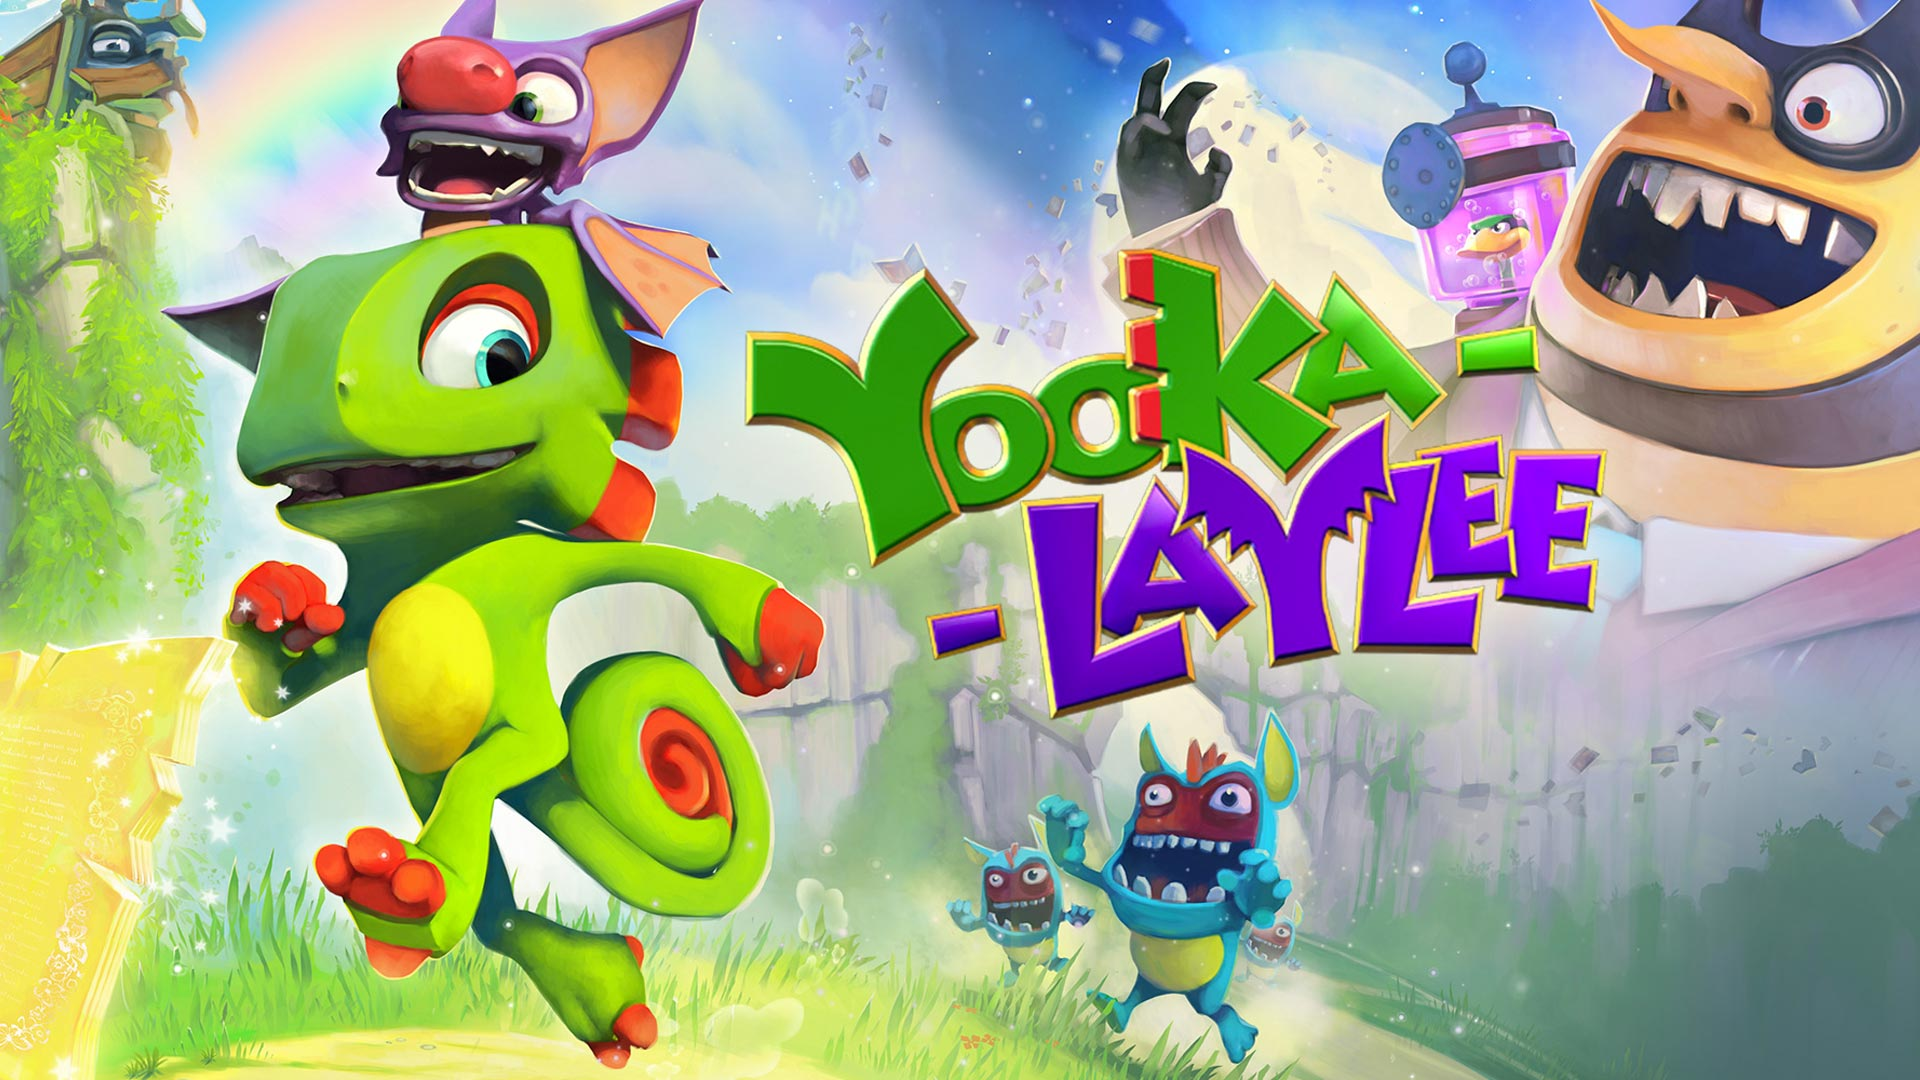 Your Toddler Started to Love Gaming? This is PS4 Games for Kids Under 5 You Should Know